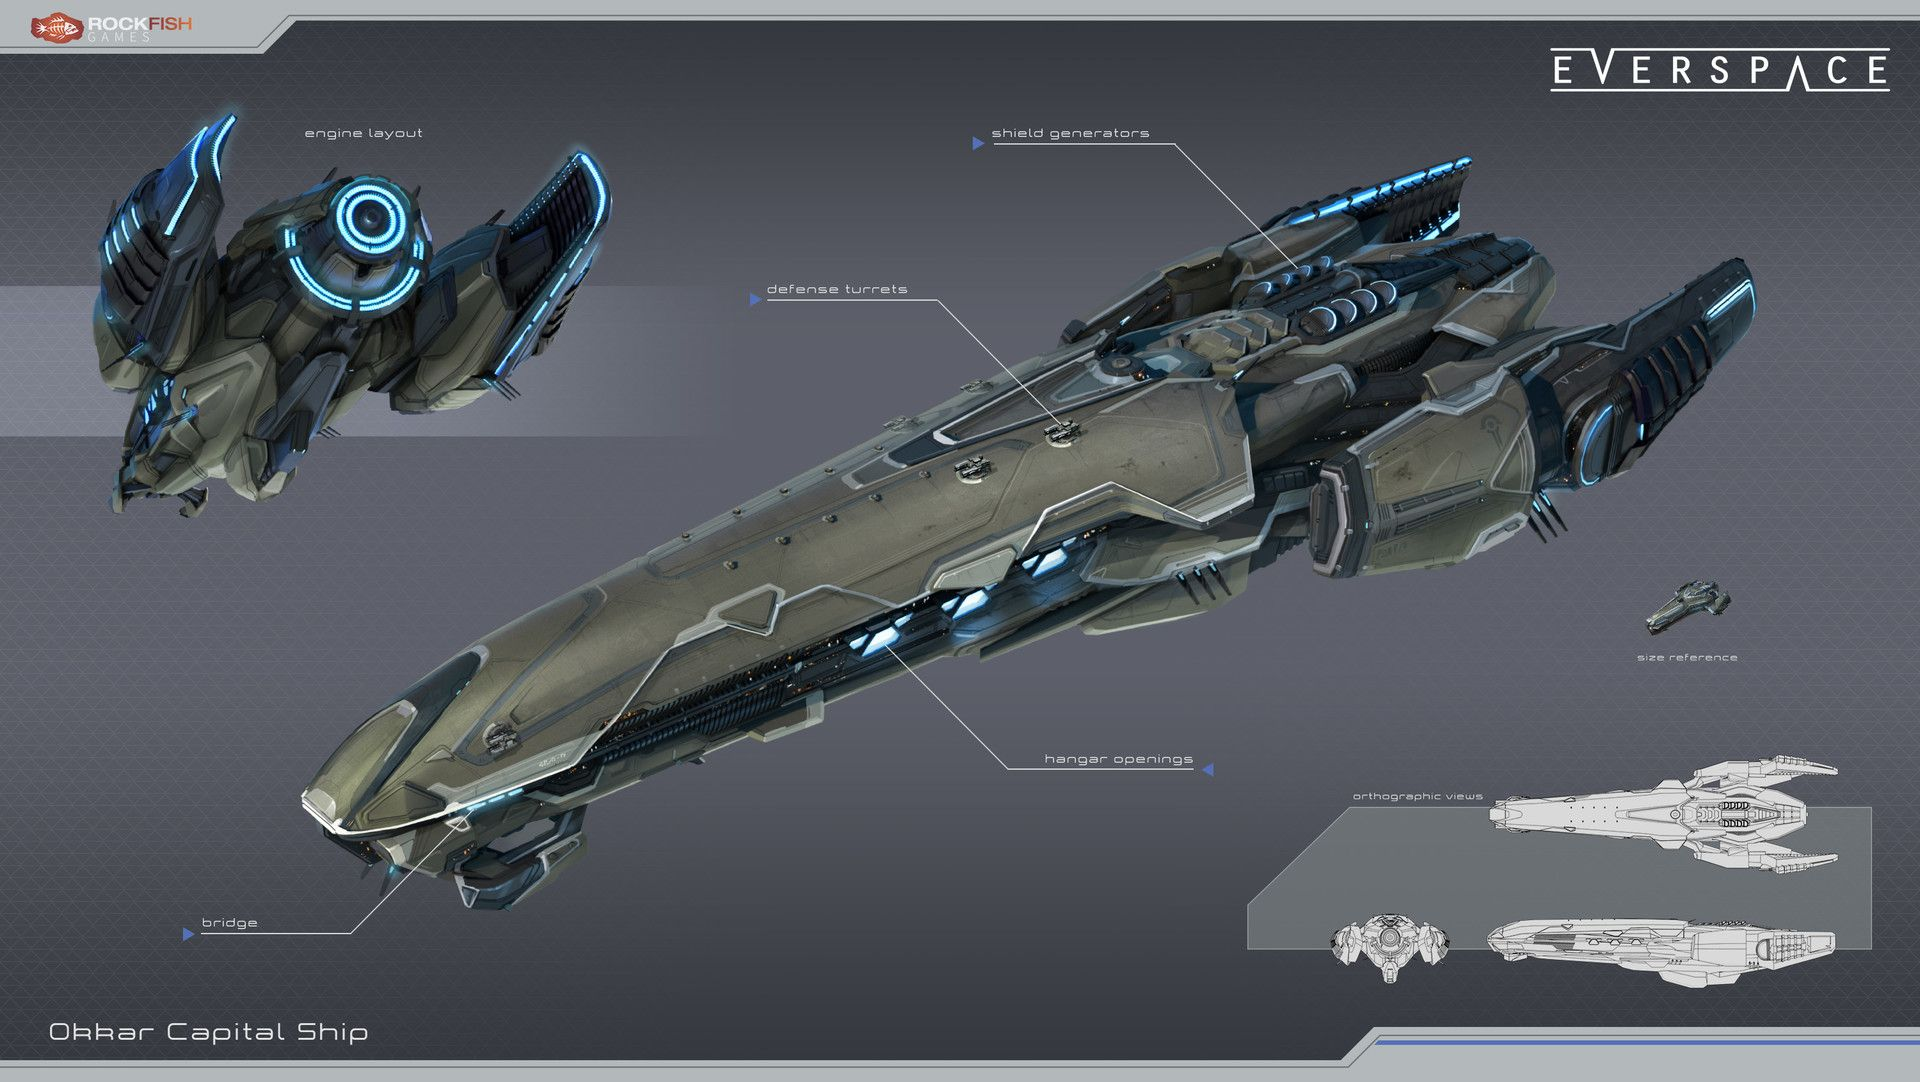 ArtStation - Okkar Capital Ship, Tobias Frank | space ship ...